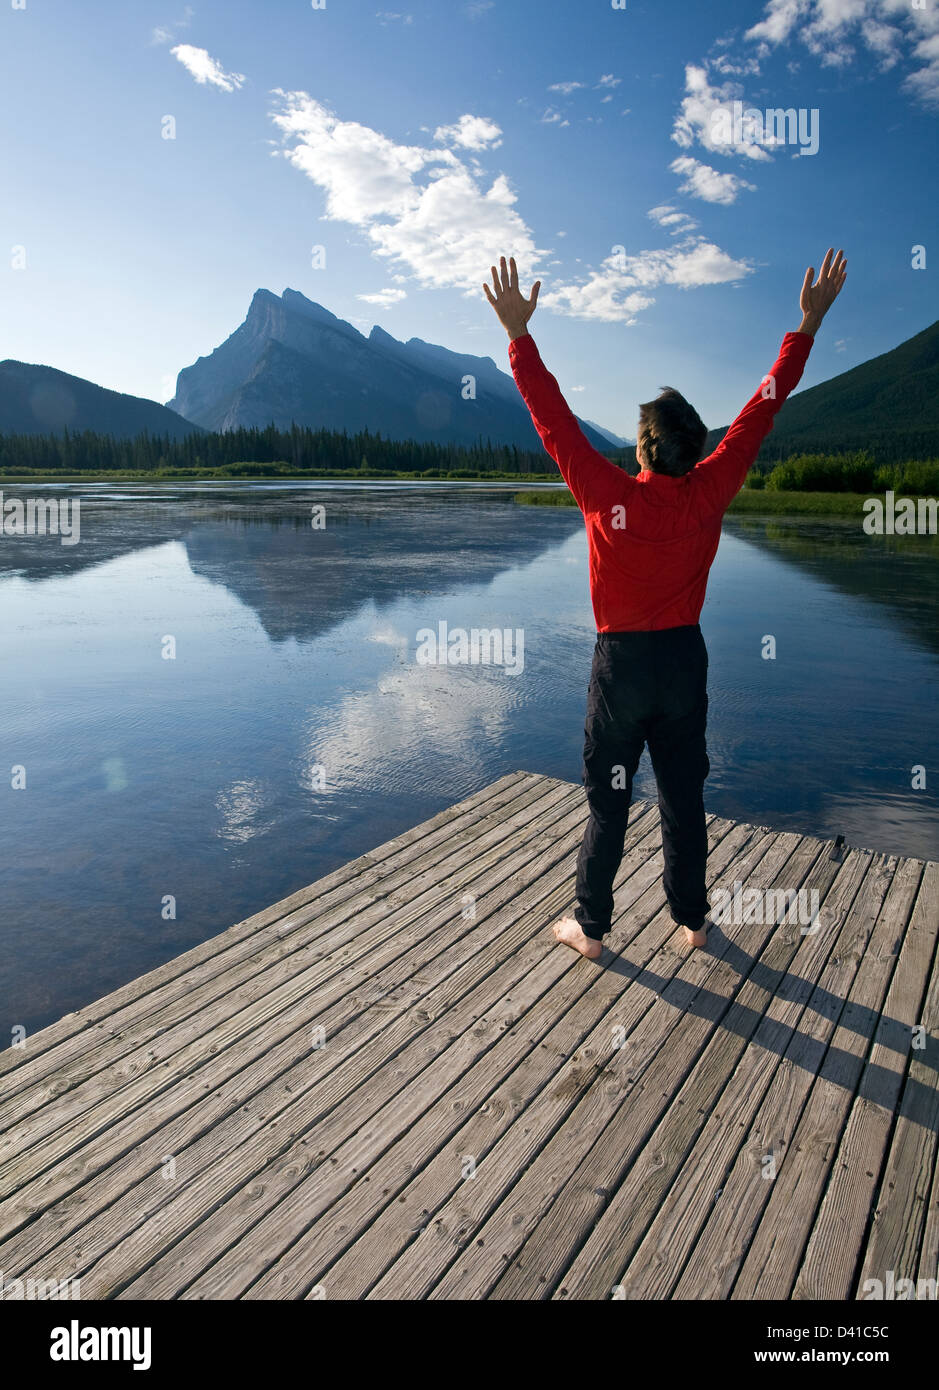 54 year old male saluting the sun on a dock at Vermillion Lake, Banff, Alberta, Canada. - Stock Image